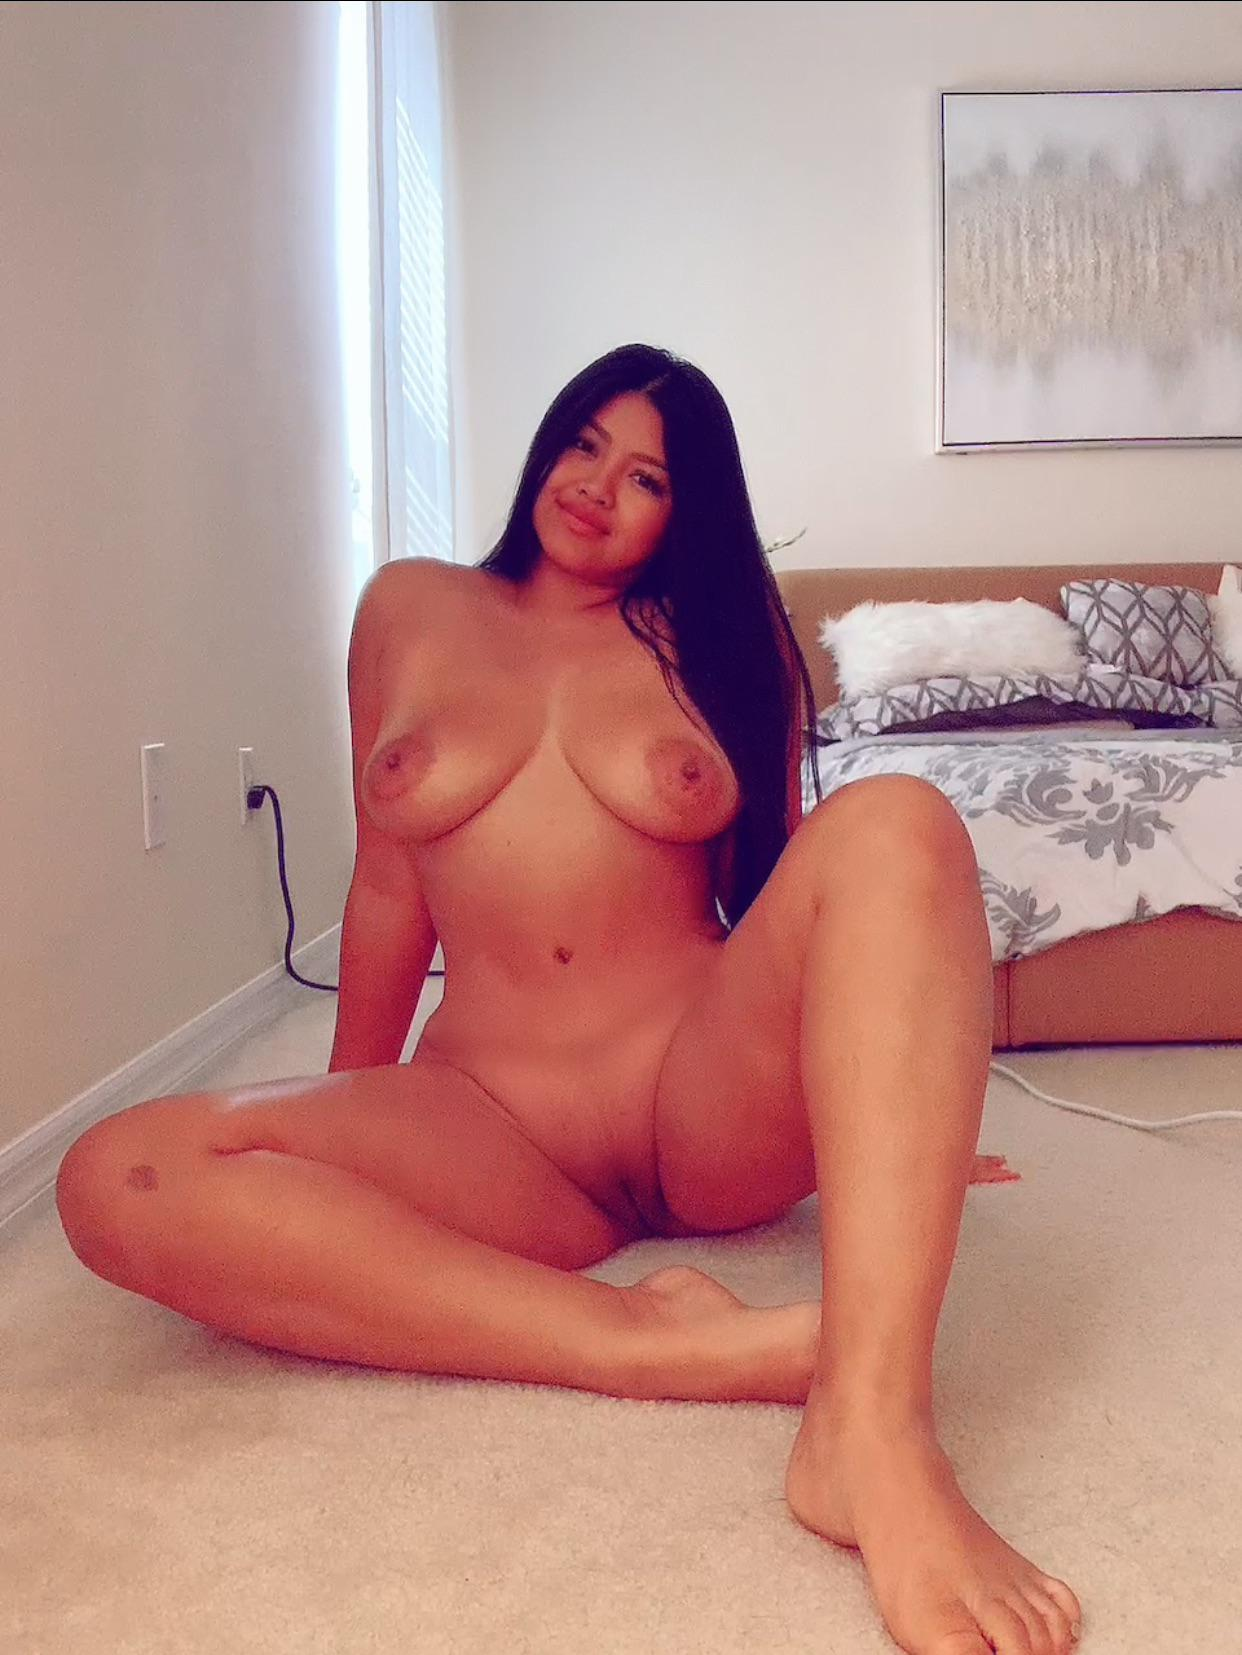 I'm here to satisfy your Asian fetish.